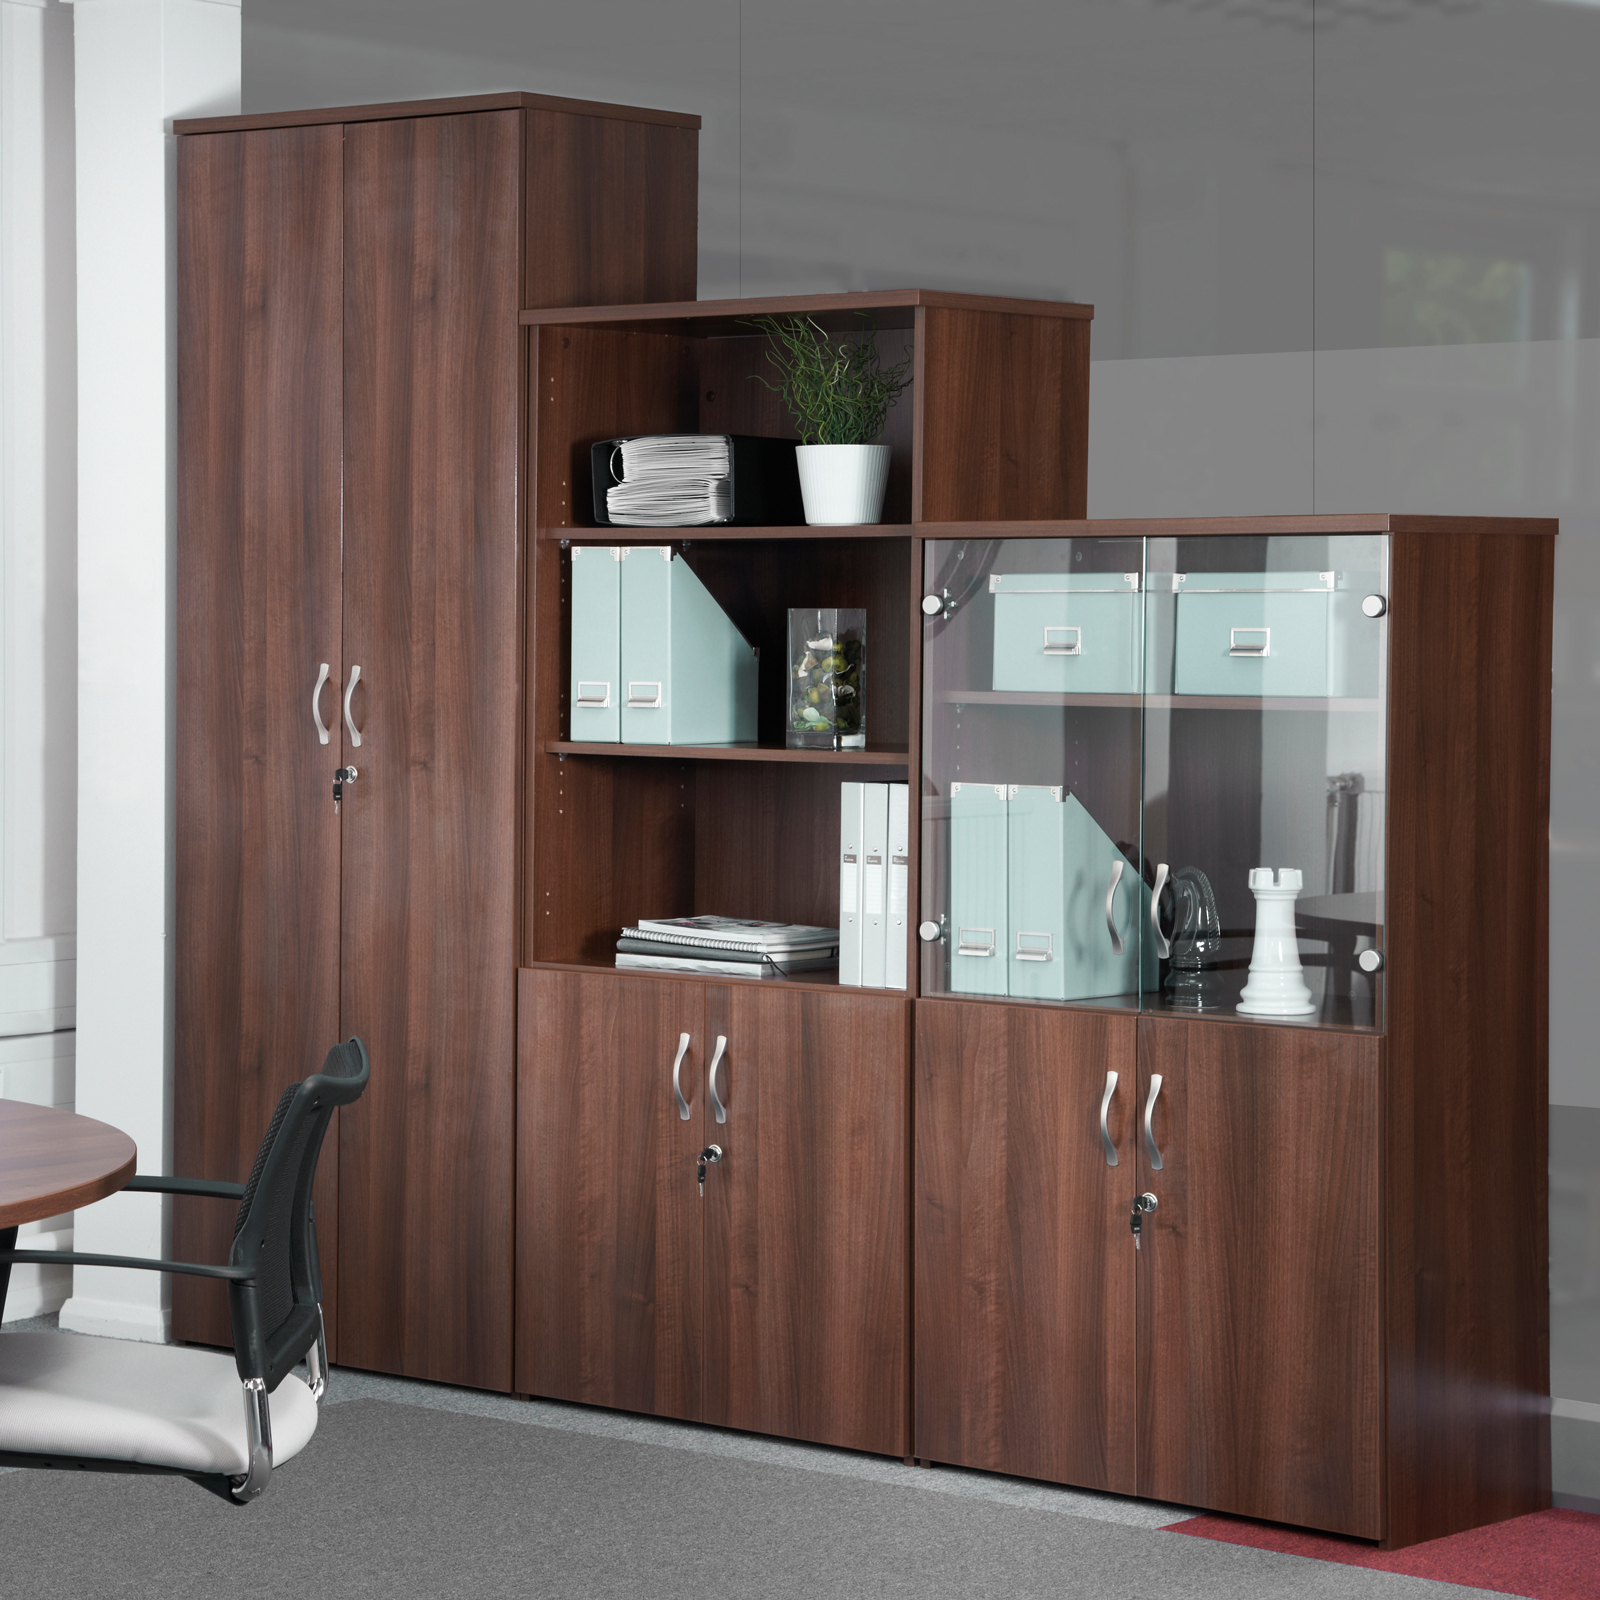 Universal double door cupboard 1440mm high with 3 shelves - walnut